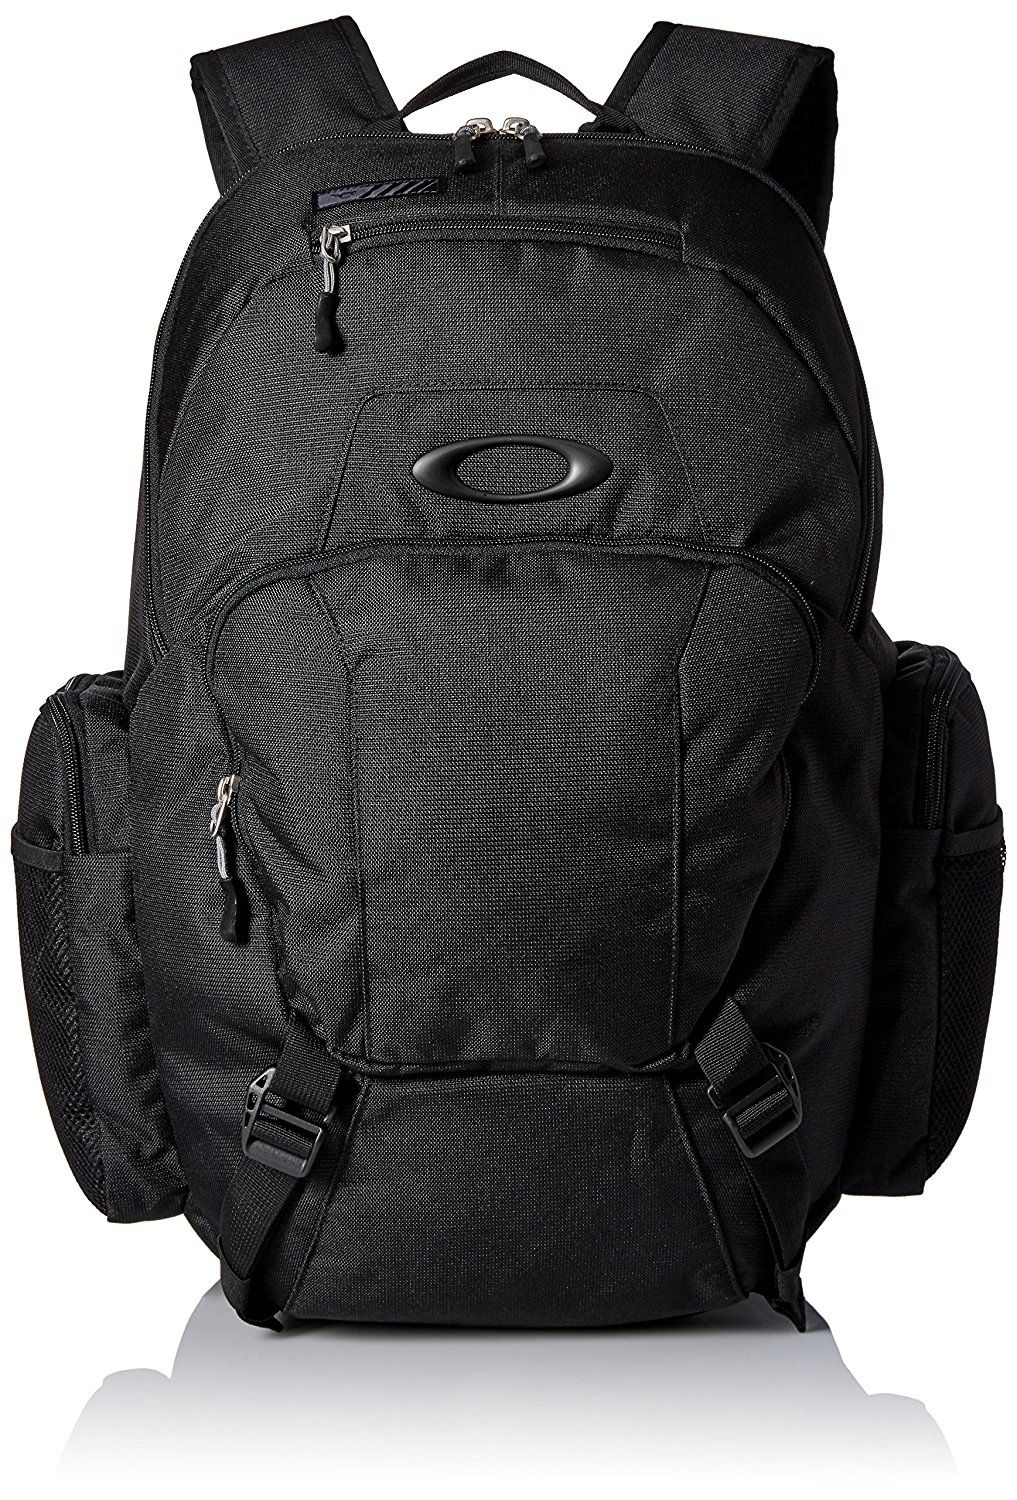 9937947883 Oakley Vault Backpacks- Fenix Toulouse Handball